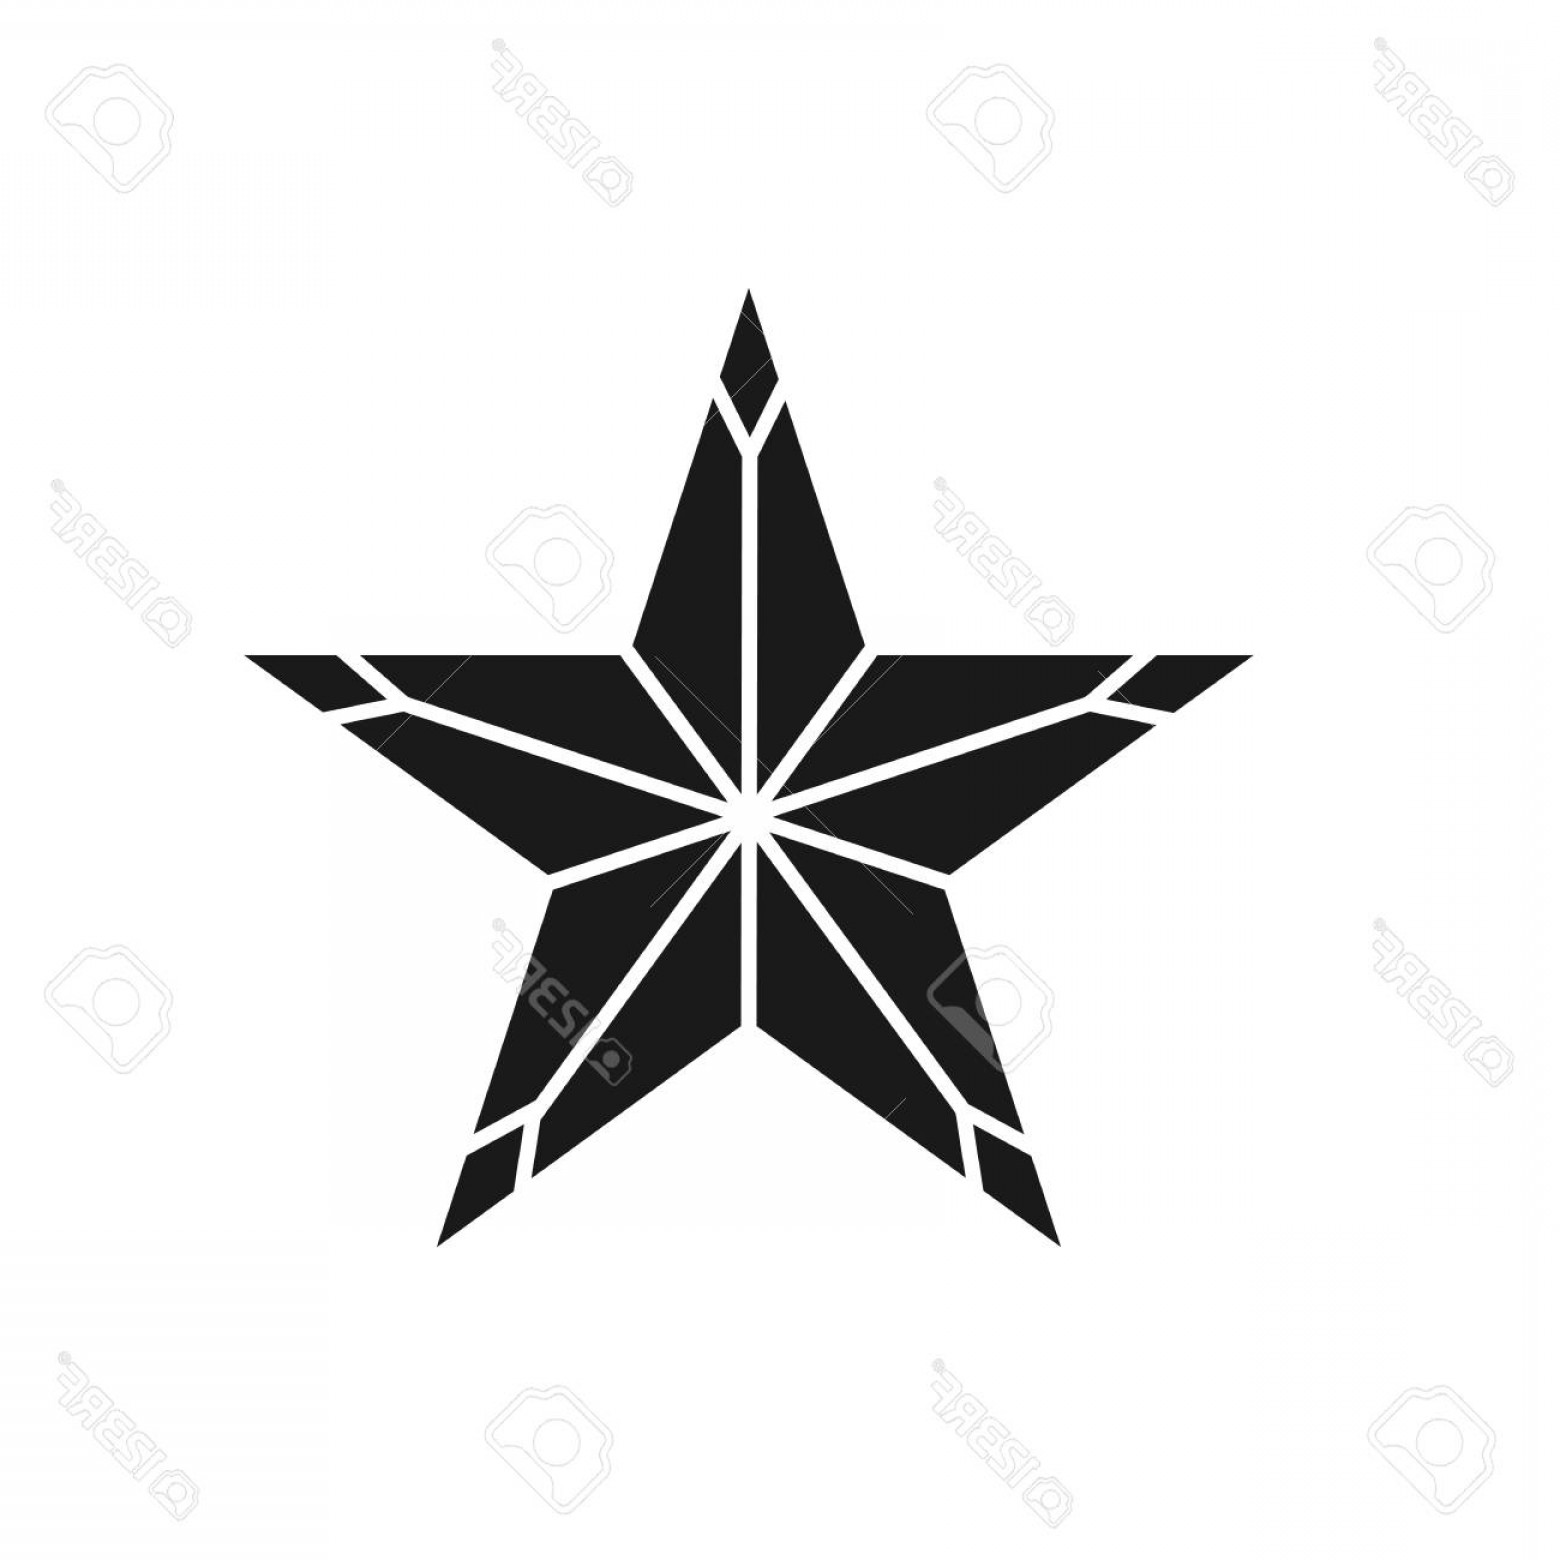 Starburst Icon Vector: Photostock Vector Star Icon Vector Flat Icon Star Flat Vector Illustration For Web Banner Web And Mobile Vector Star I